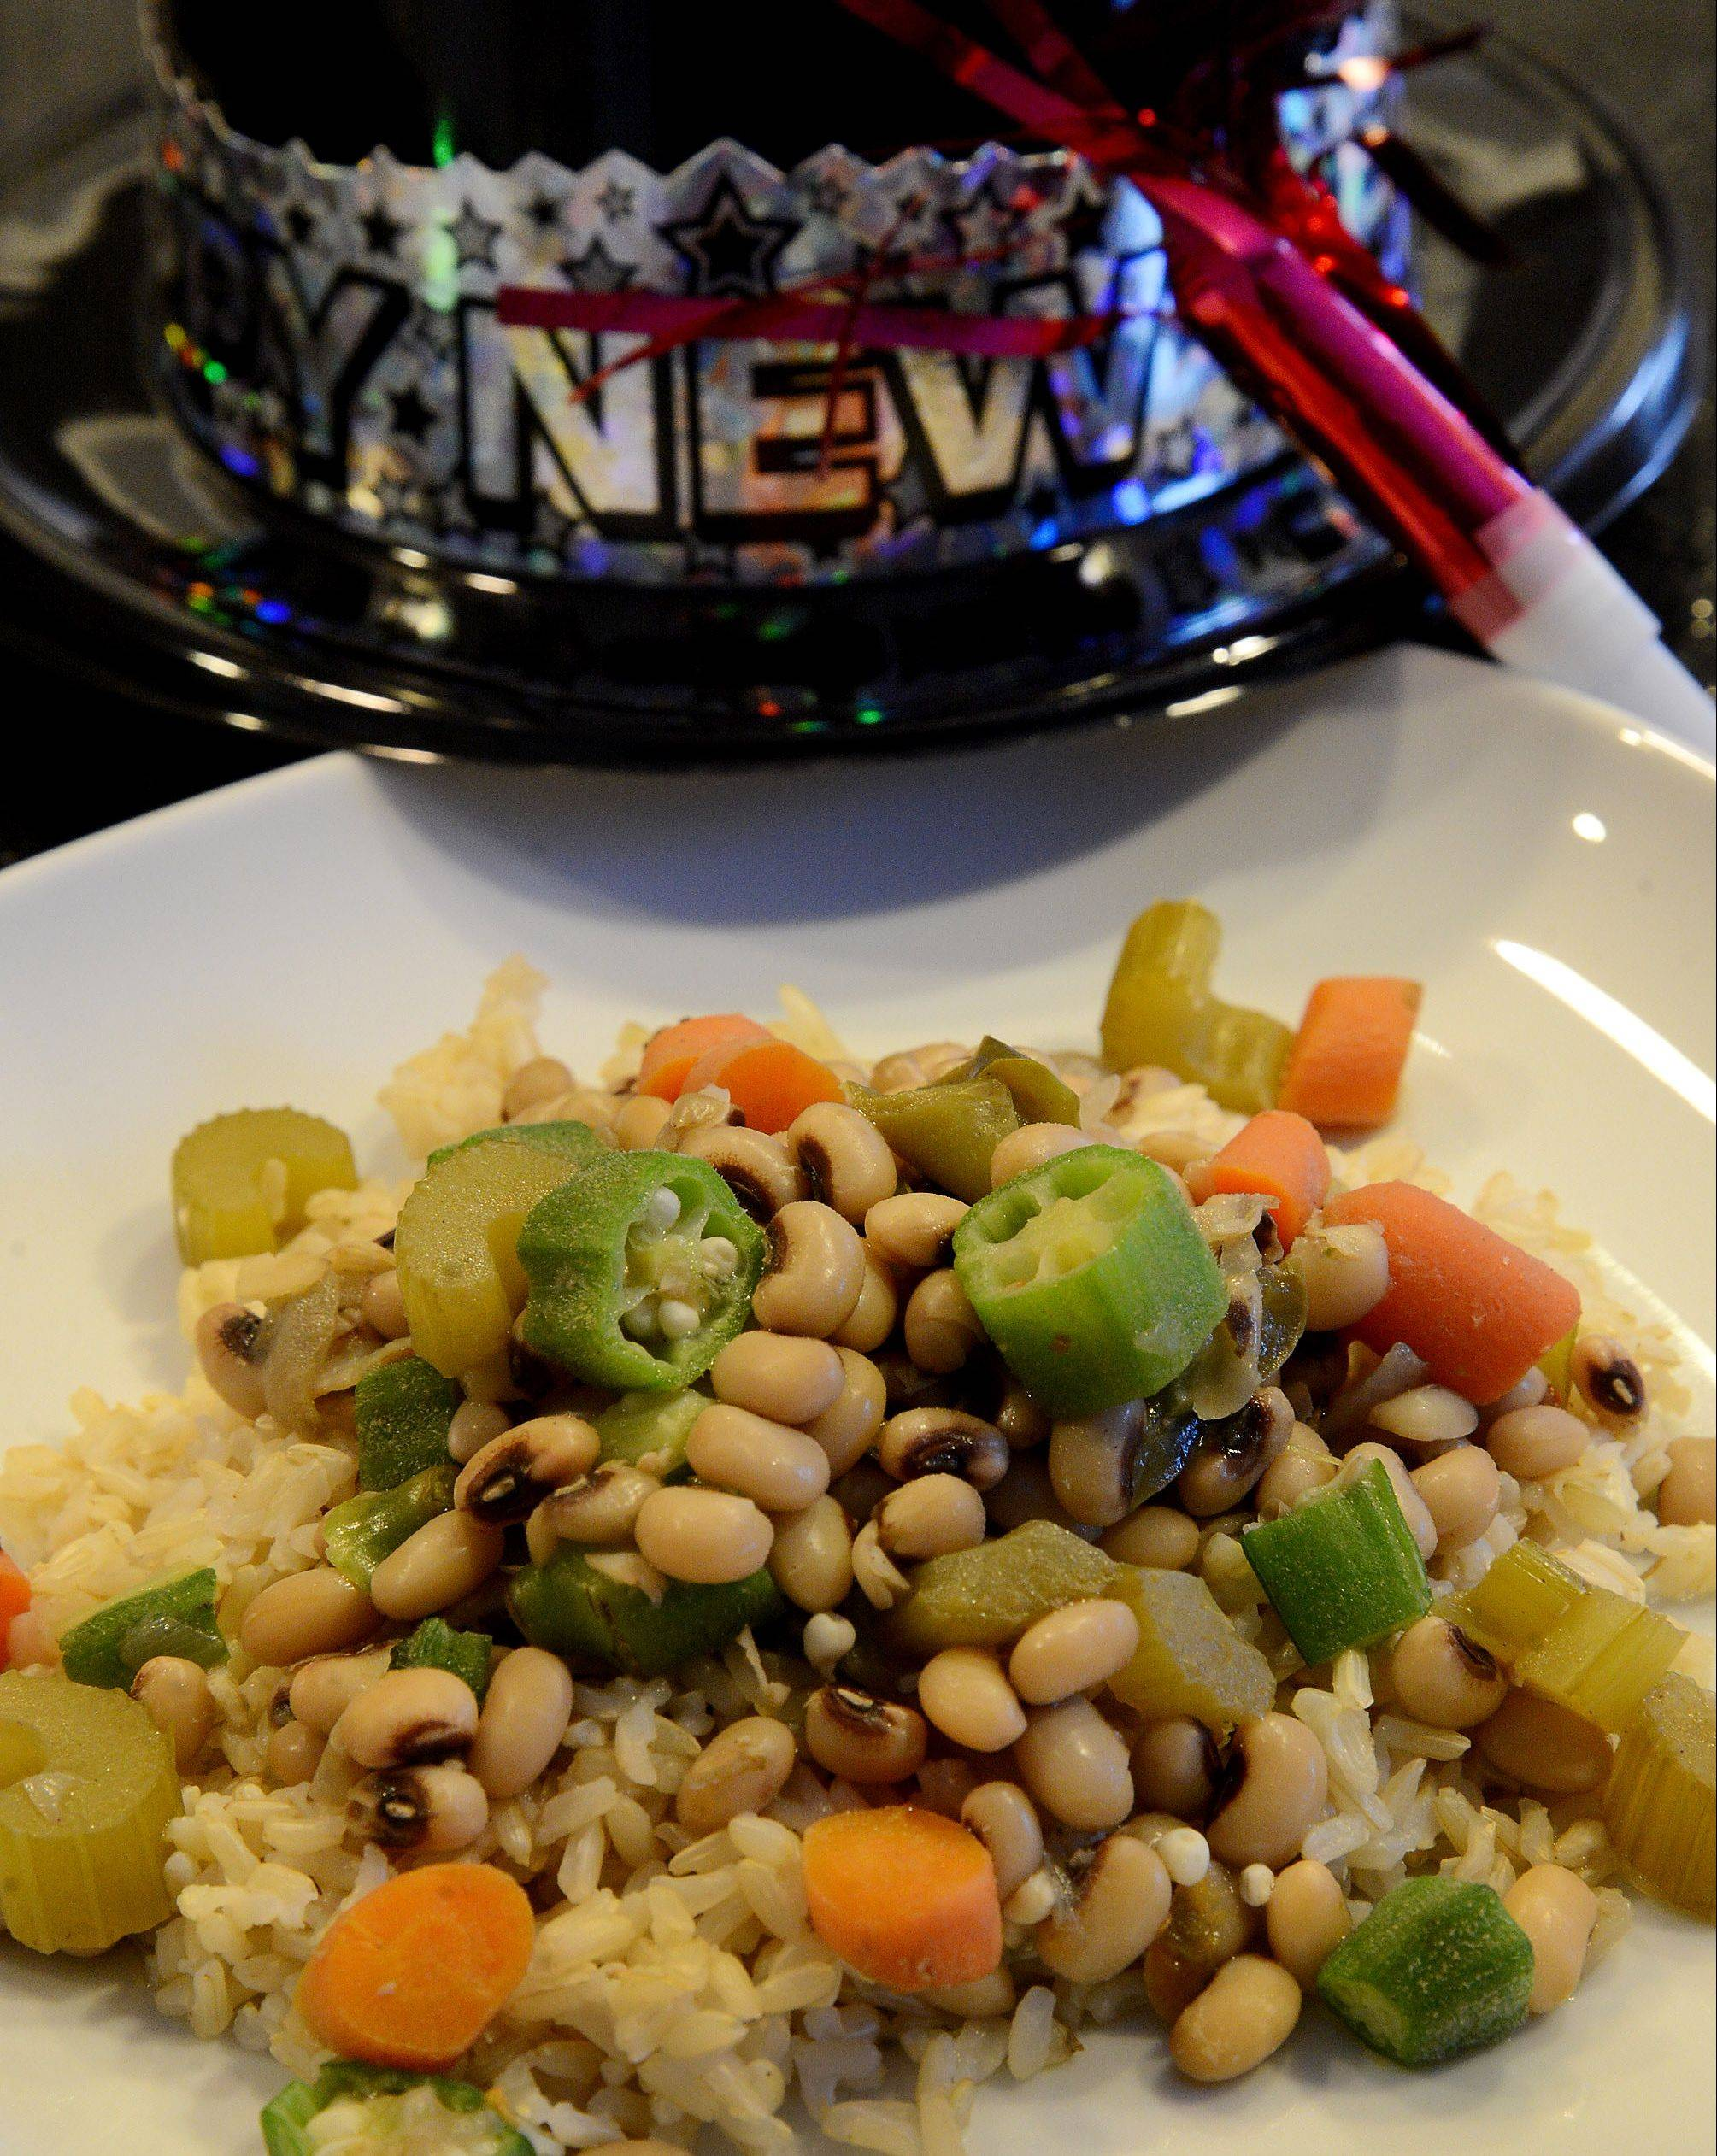 Eat right, live well: Black eyed peas for health all year long